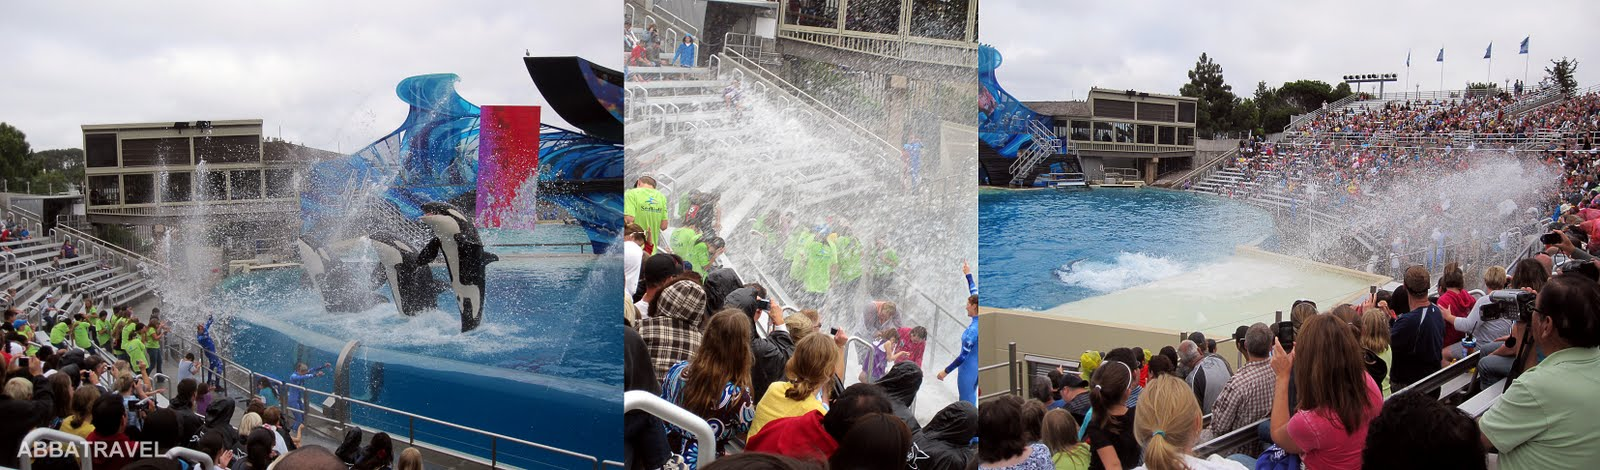 Incidents At Seaworld Parks: Los Angeles, San Diego